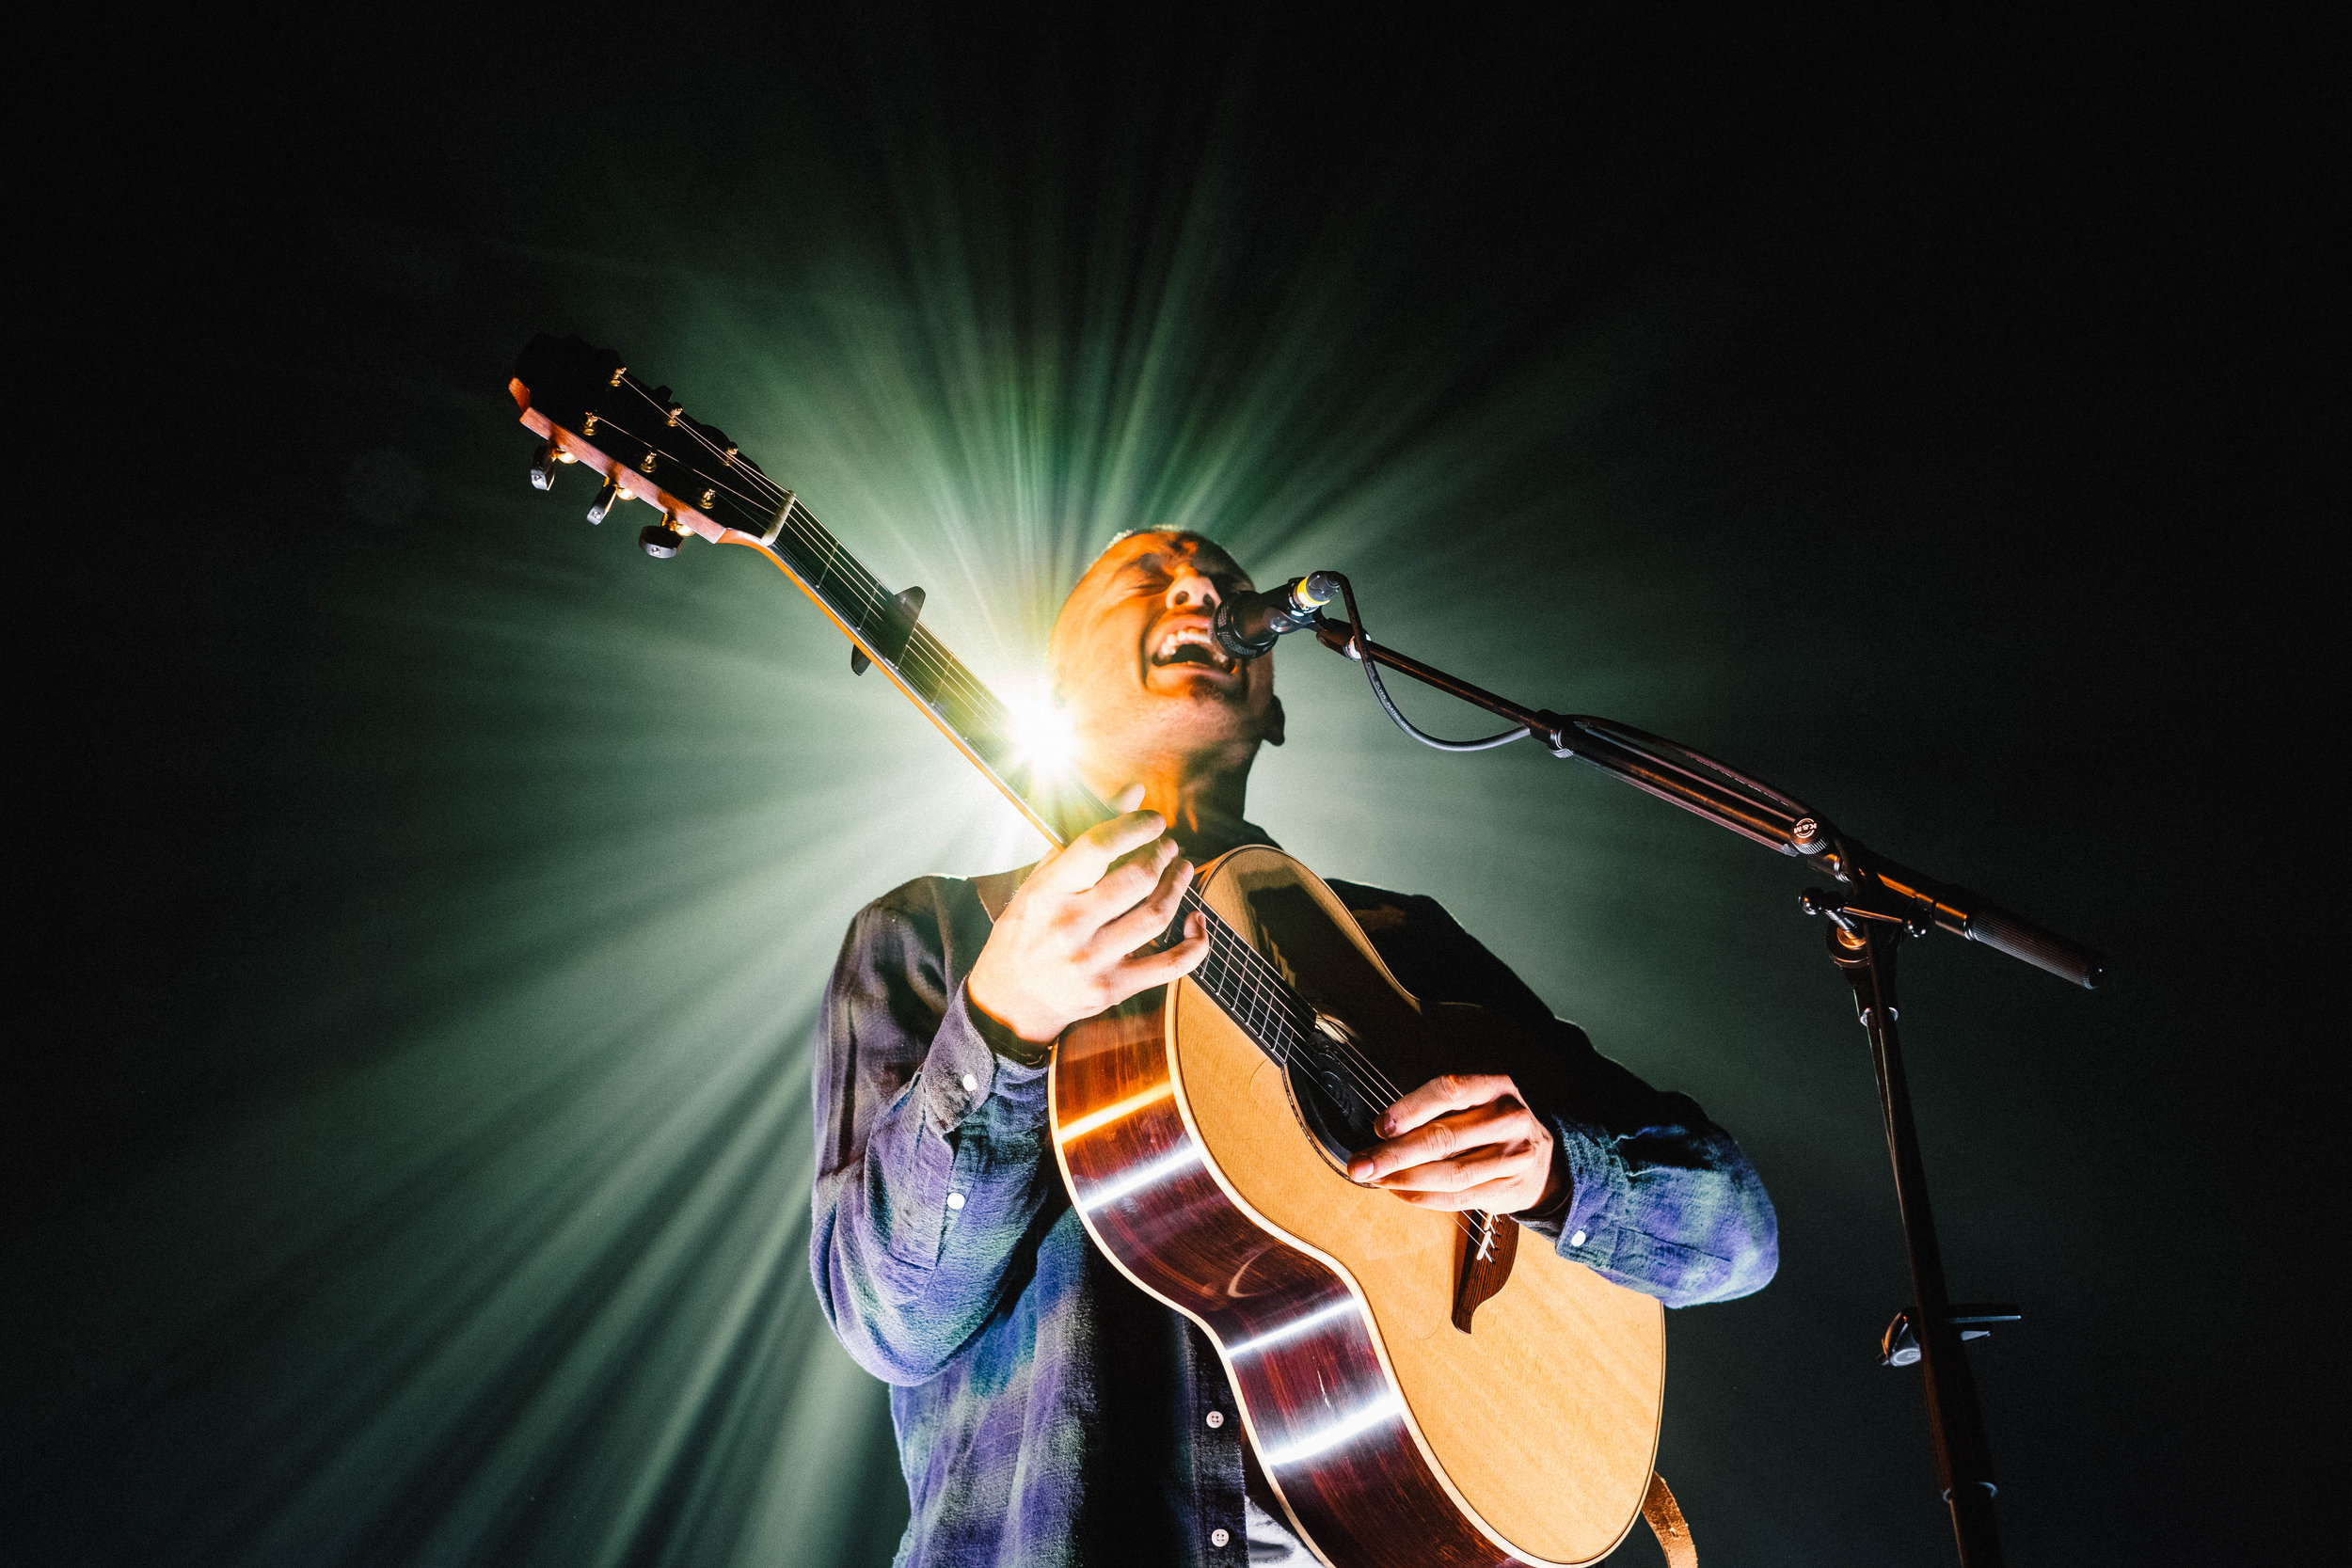 DERMOT KENNEDY PERFORMING AT BIRMINGHAM'S O2 INSTITUTE - 07.05.2019  PICTURE BY: HOLLIE TURNER PHOTOGRAPHY